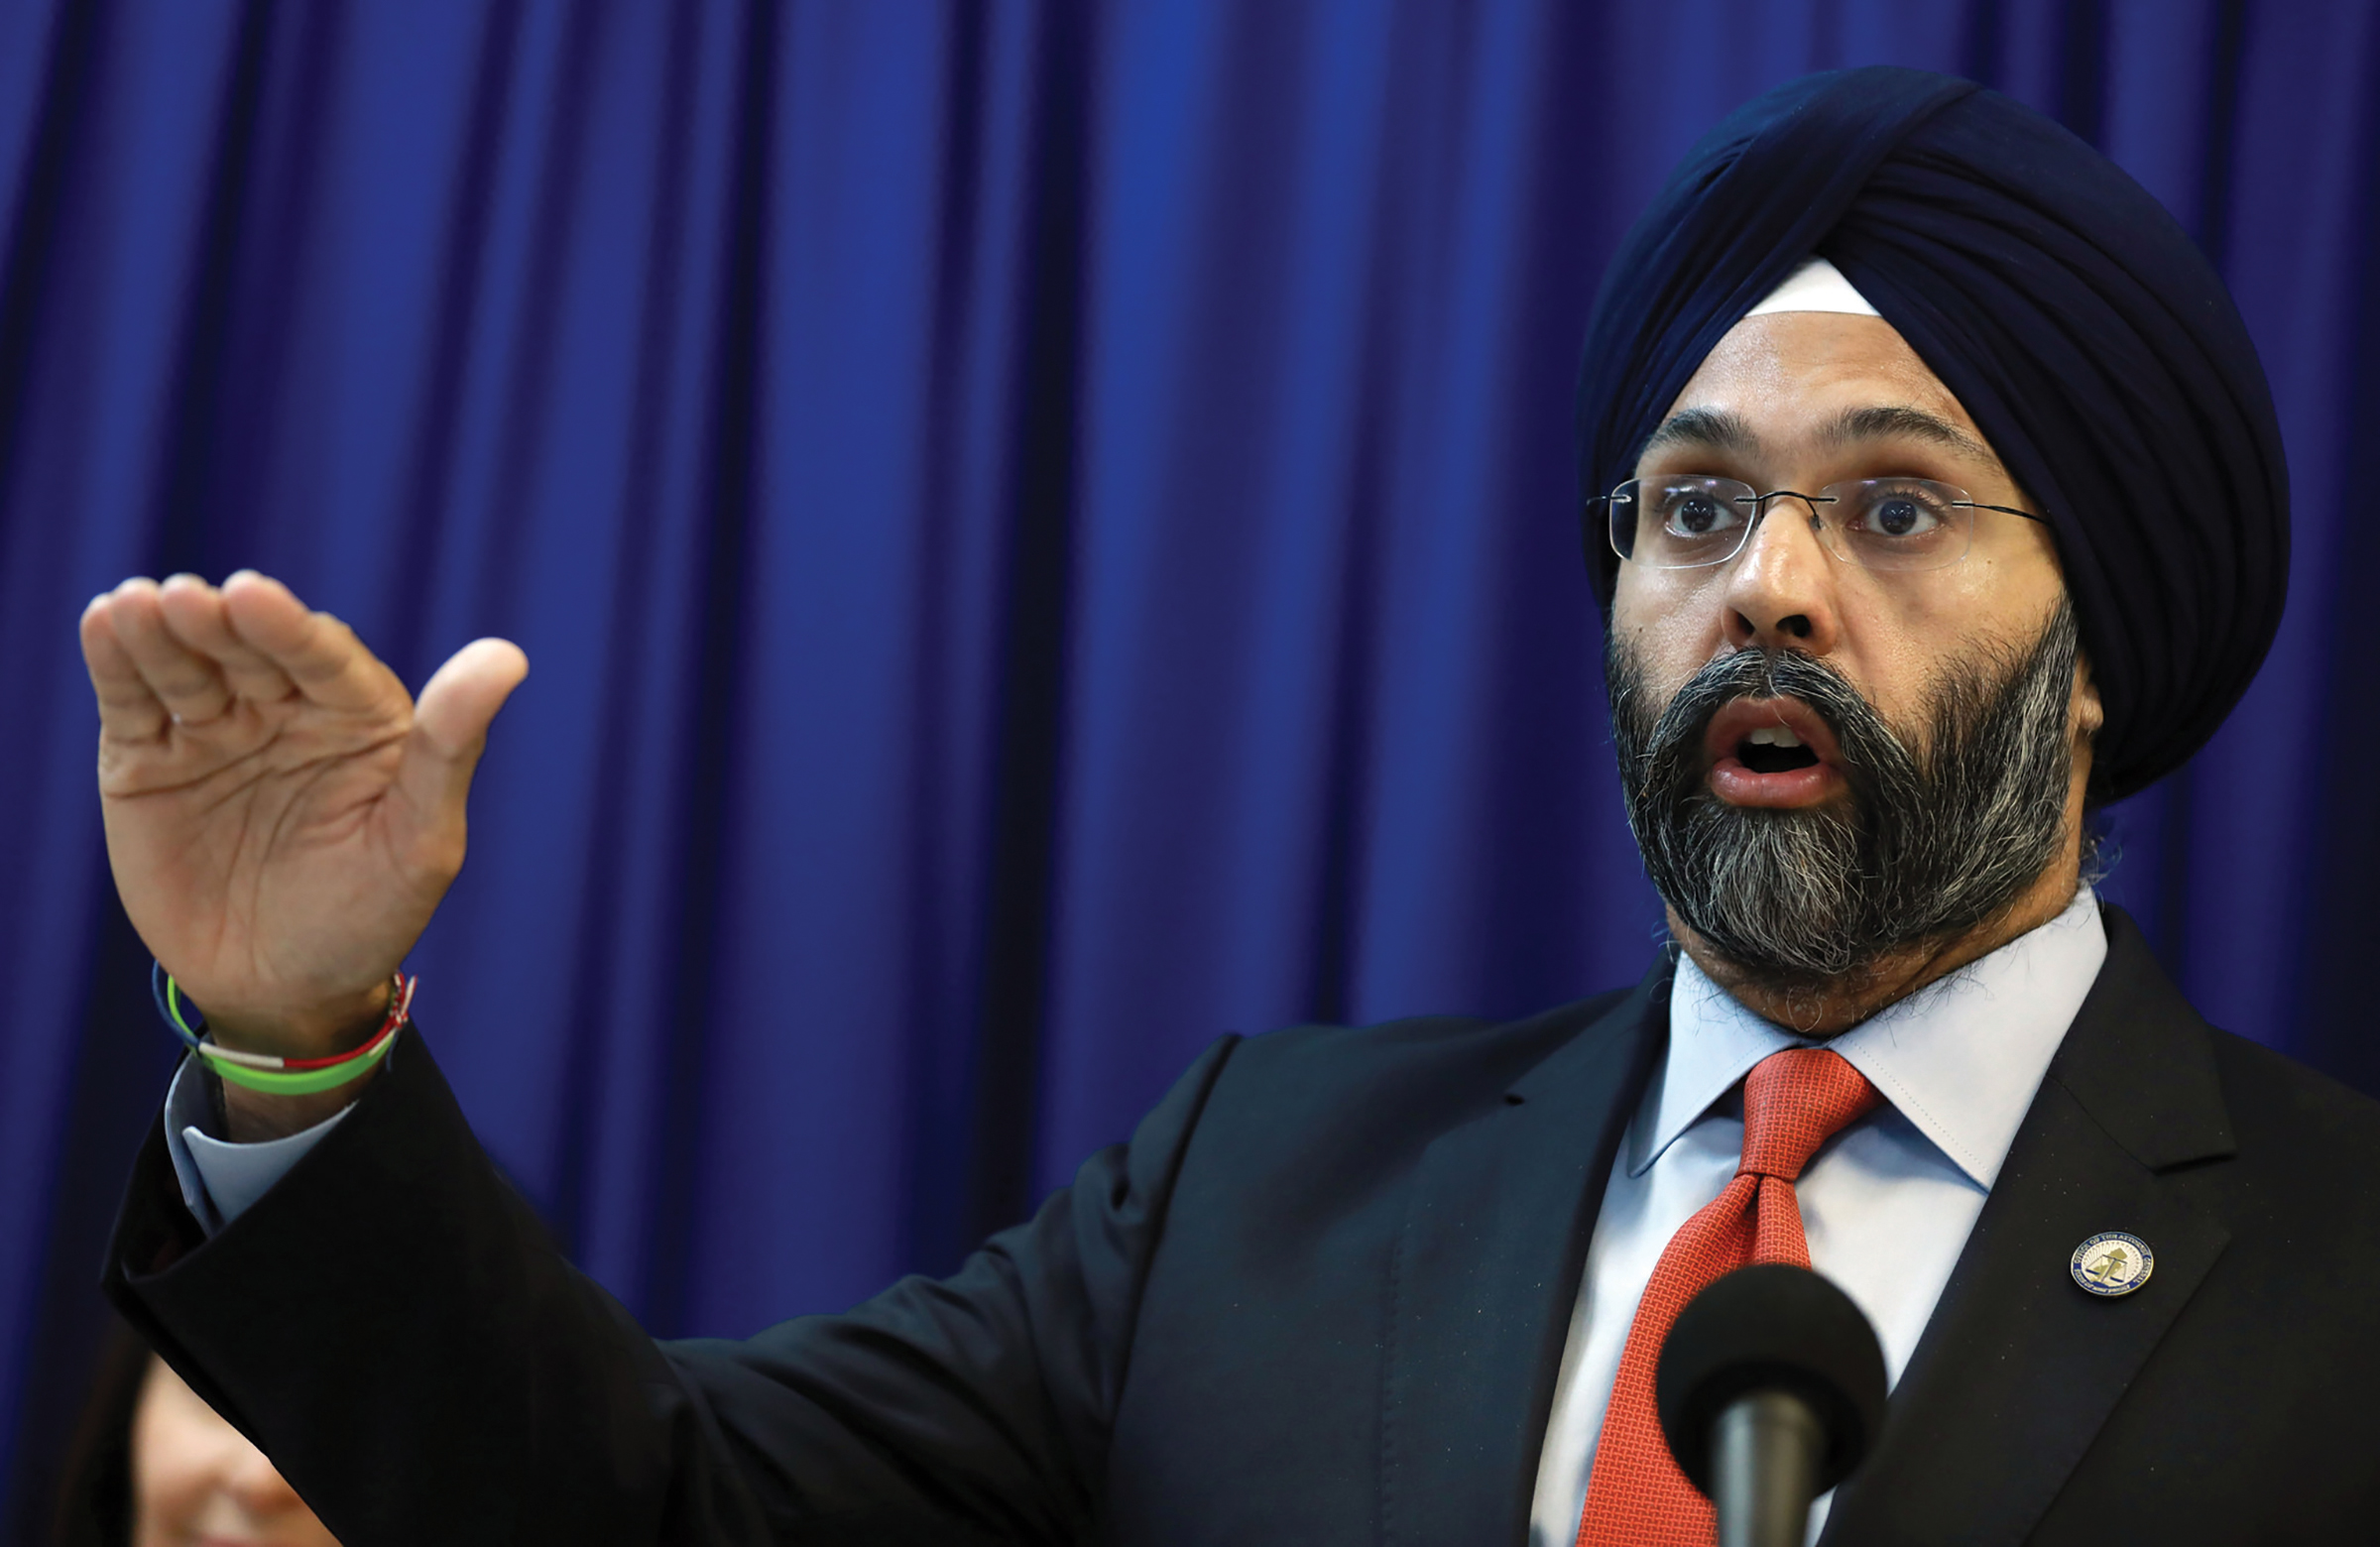 Gurbir Grewal is the attorney general of New Jersey. (Courtesy Flickr)